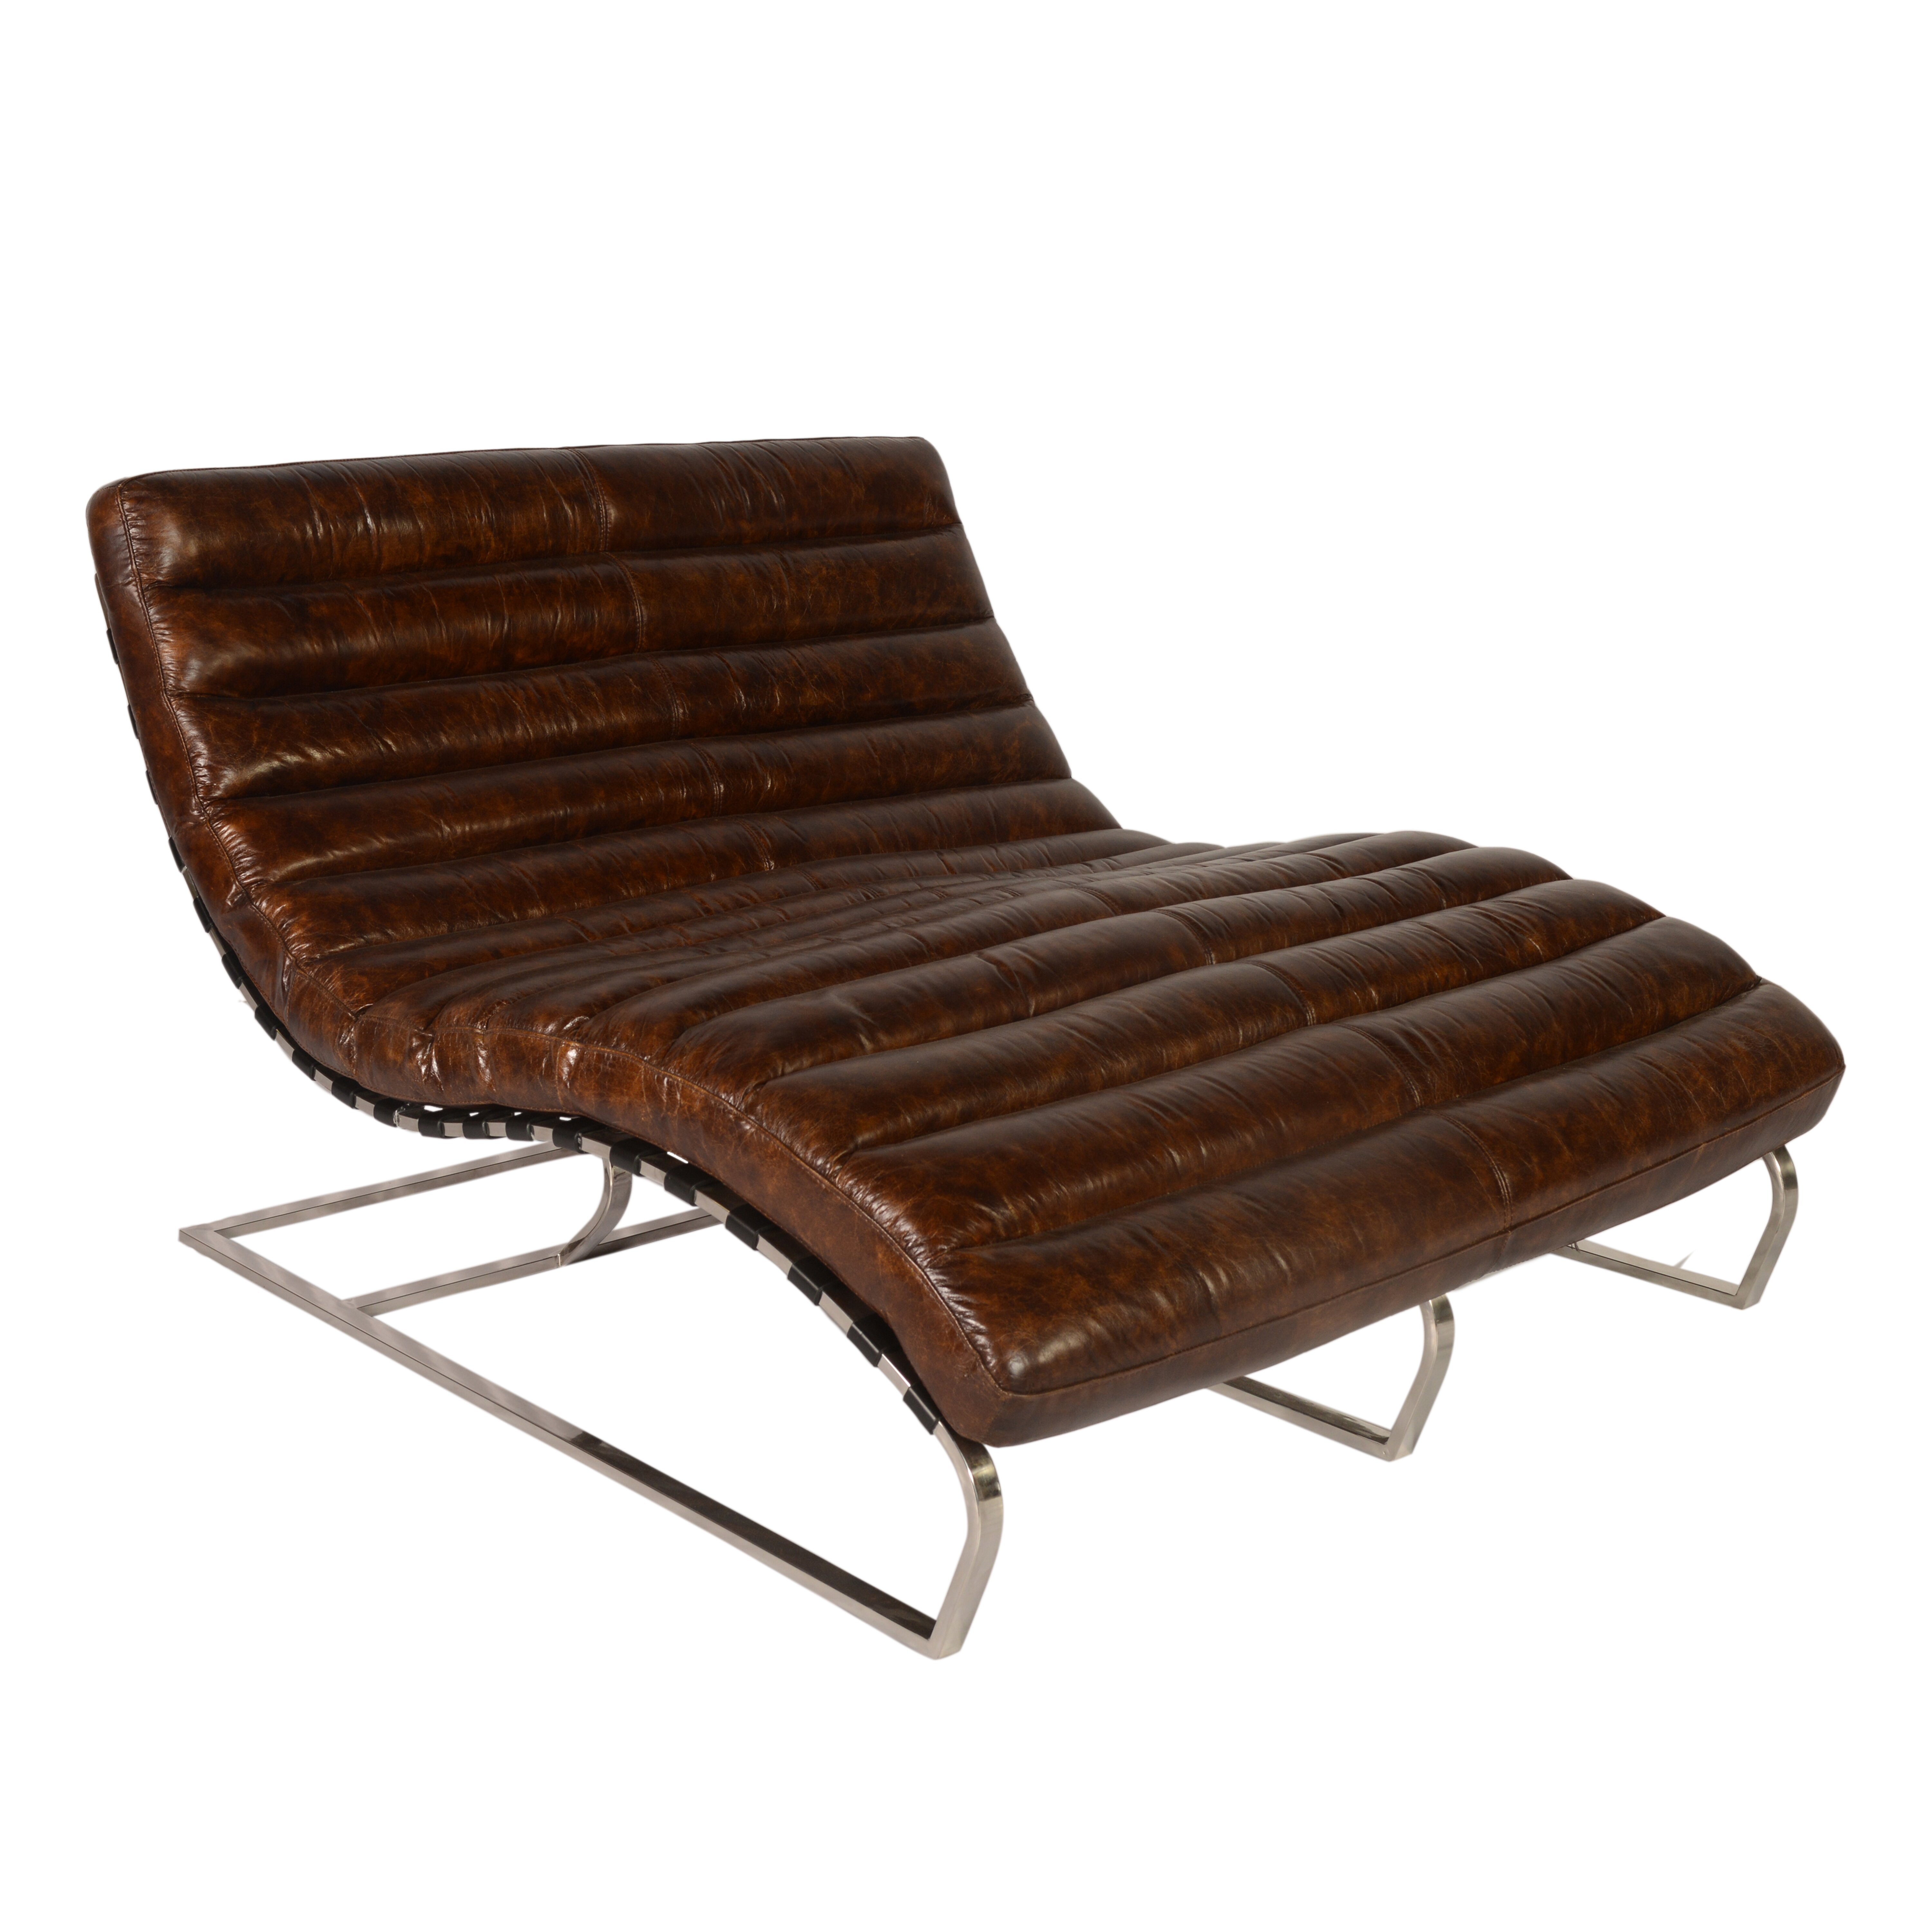 Perici leather double chaise lounge wayfair for Bellagio leather chaise lounge